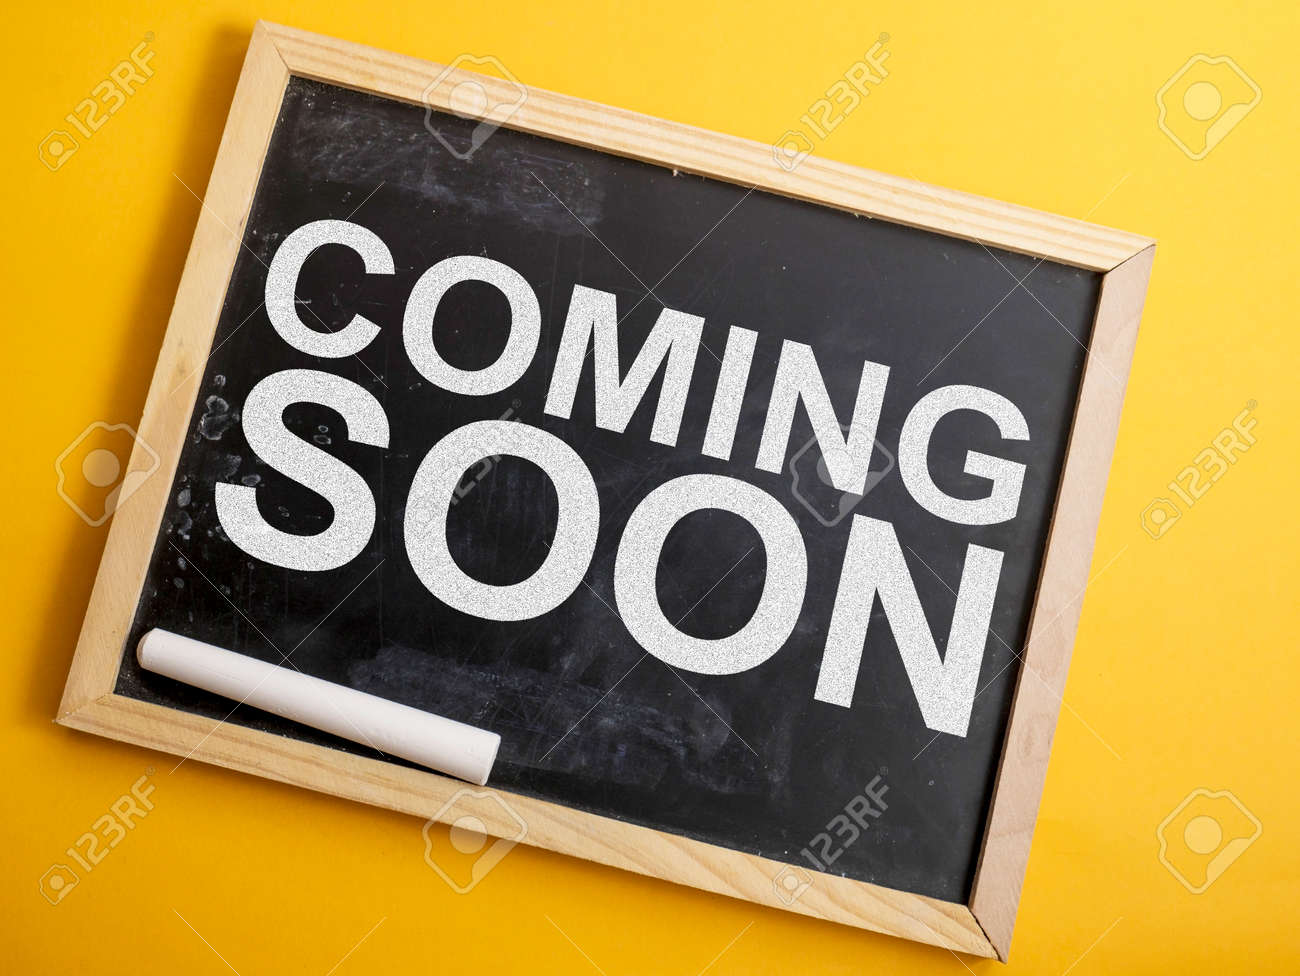 Coming Soon Motivational Inspirational Business Marketing Words Stock Photo Picture And Royalty Free Image Image 122466387